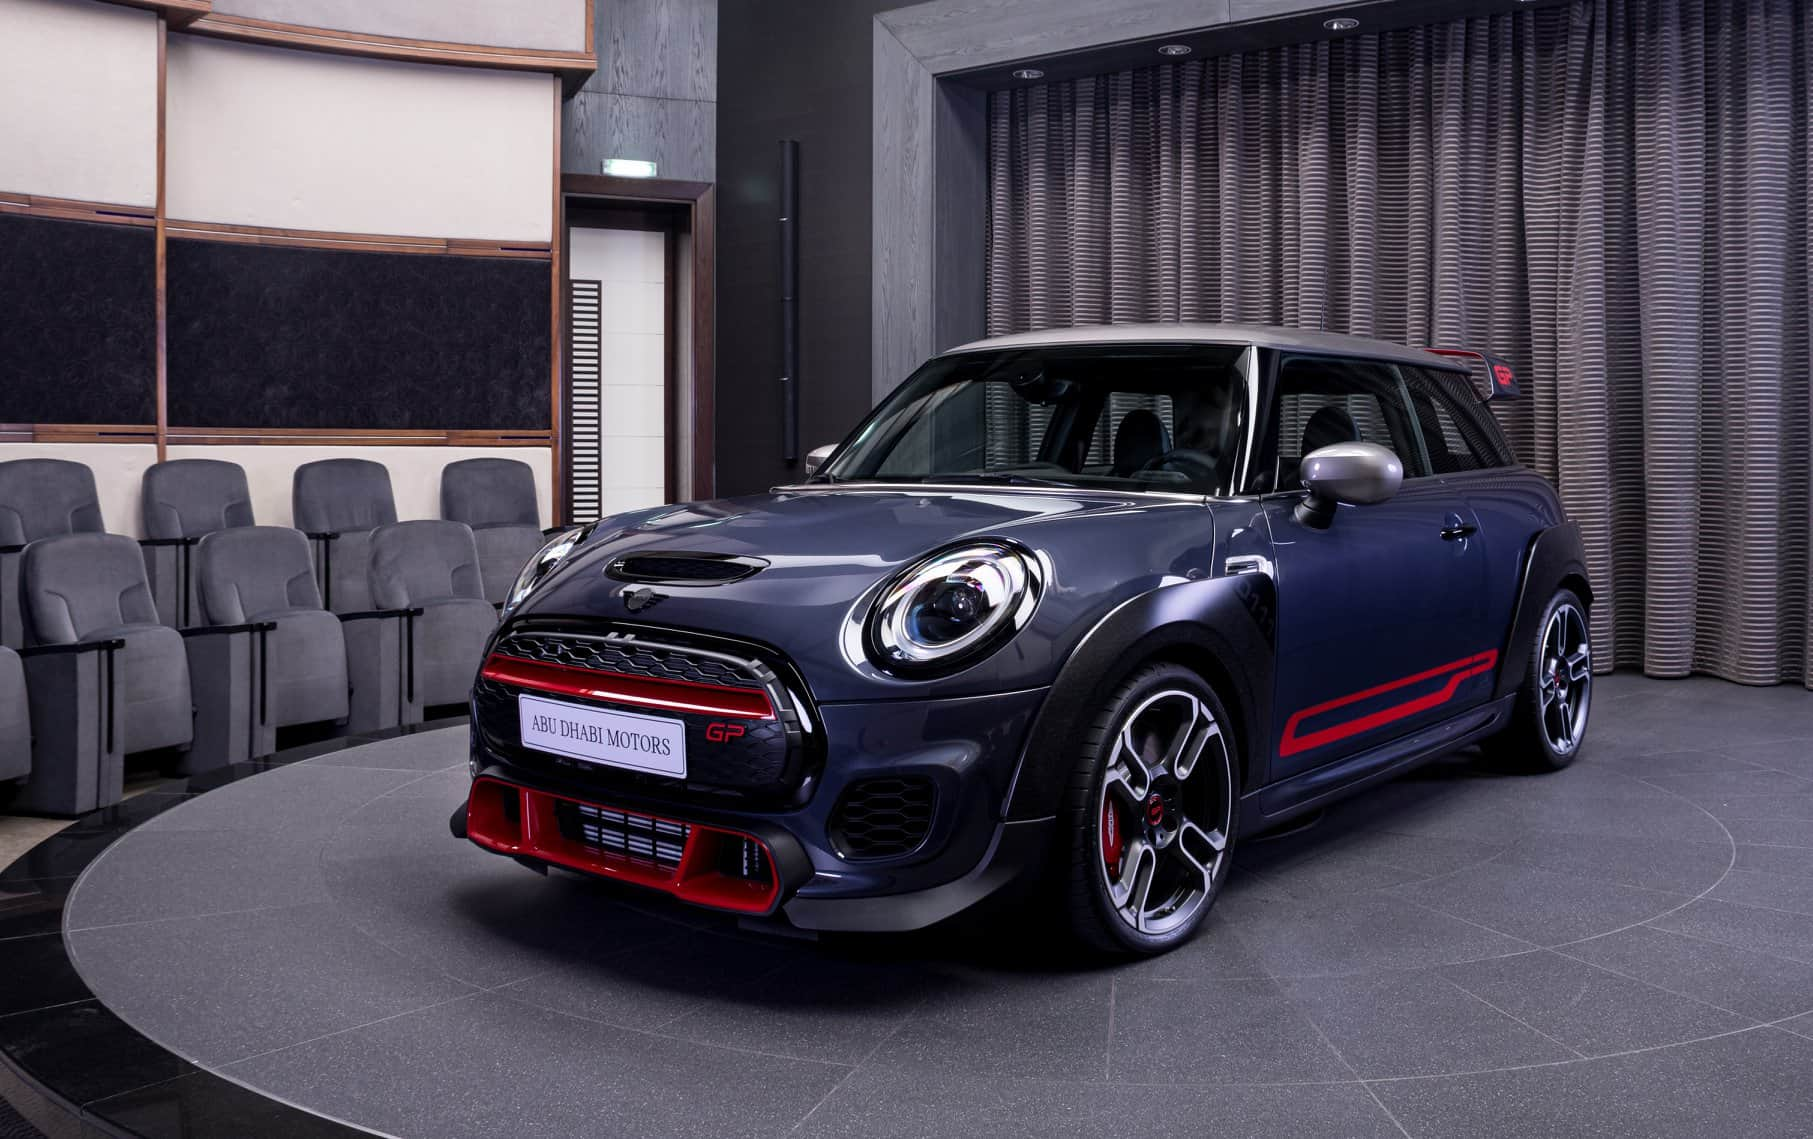 The new MINI John Cooper Works GP 3 Door